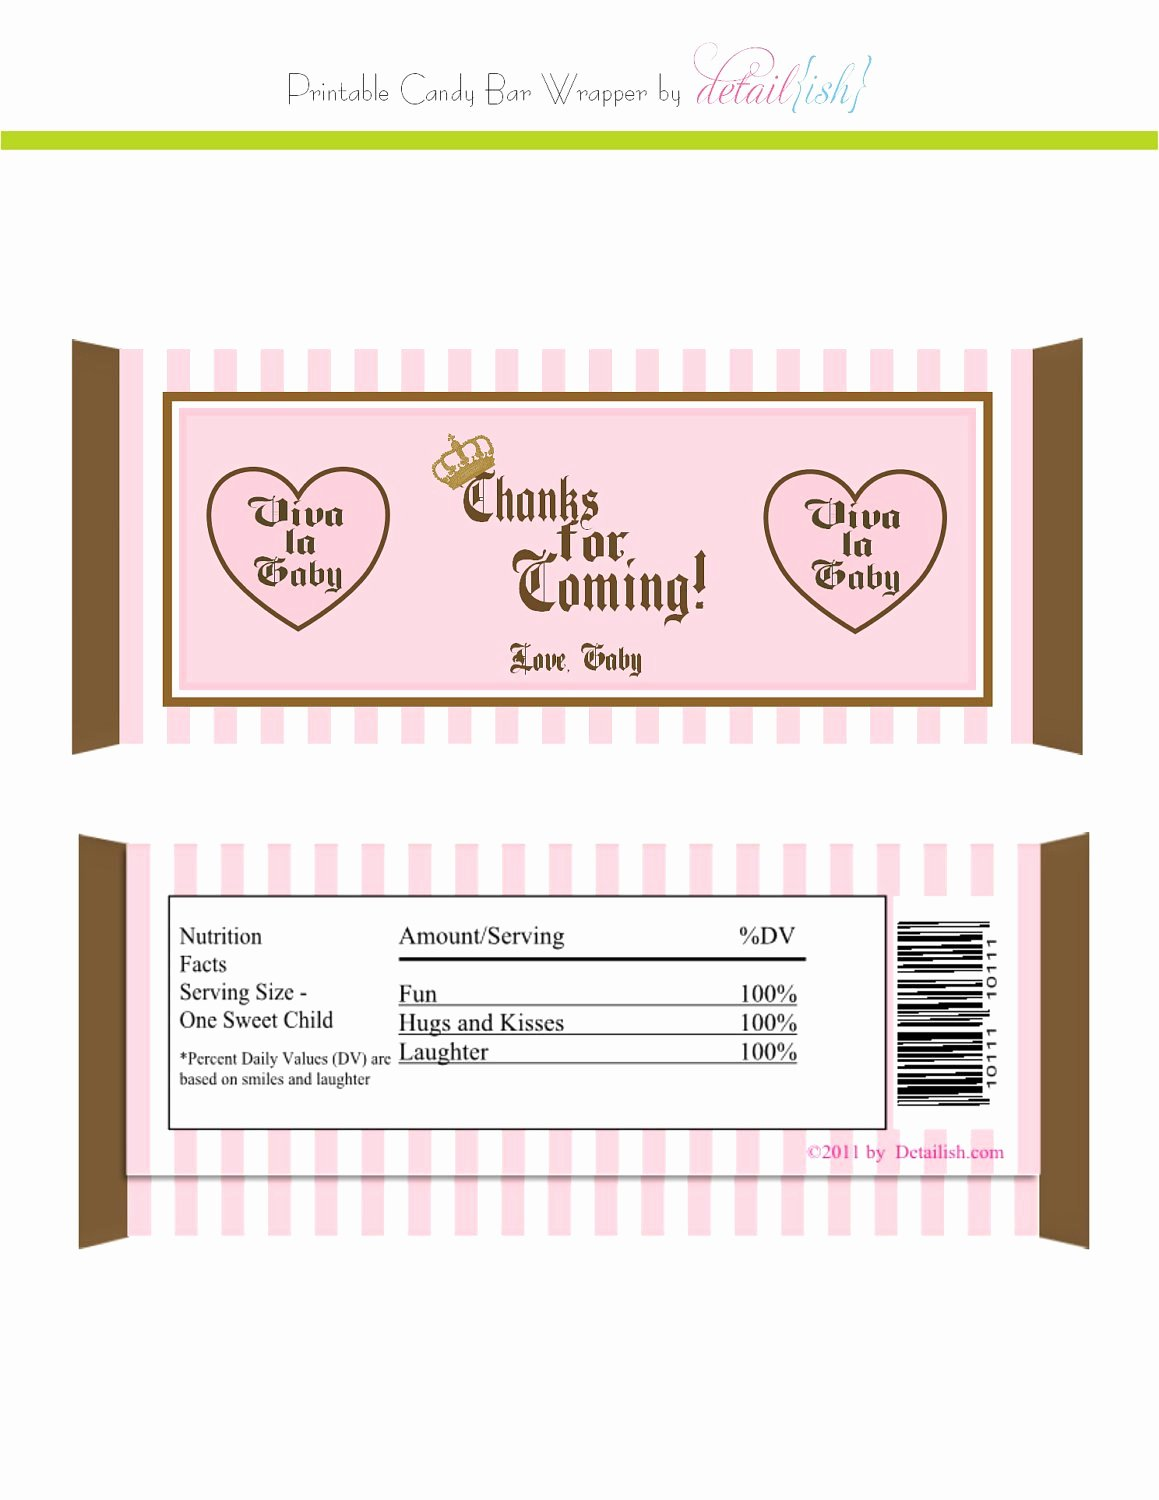 Mini Candy Bar Wrapper Template Fresh Free Printable Candy Wrapper Template Christmas Chocolate